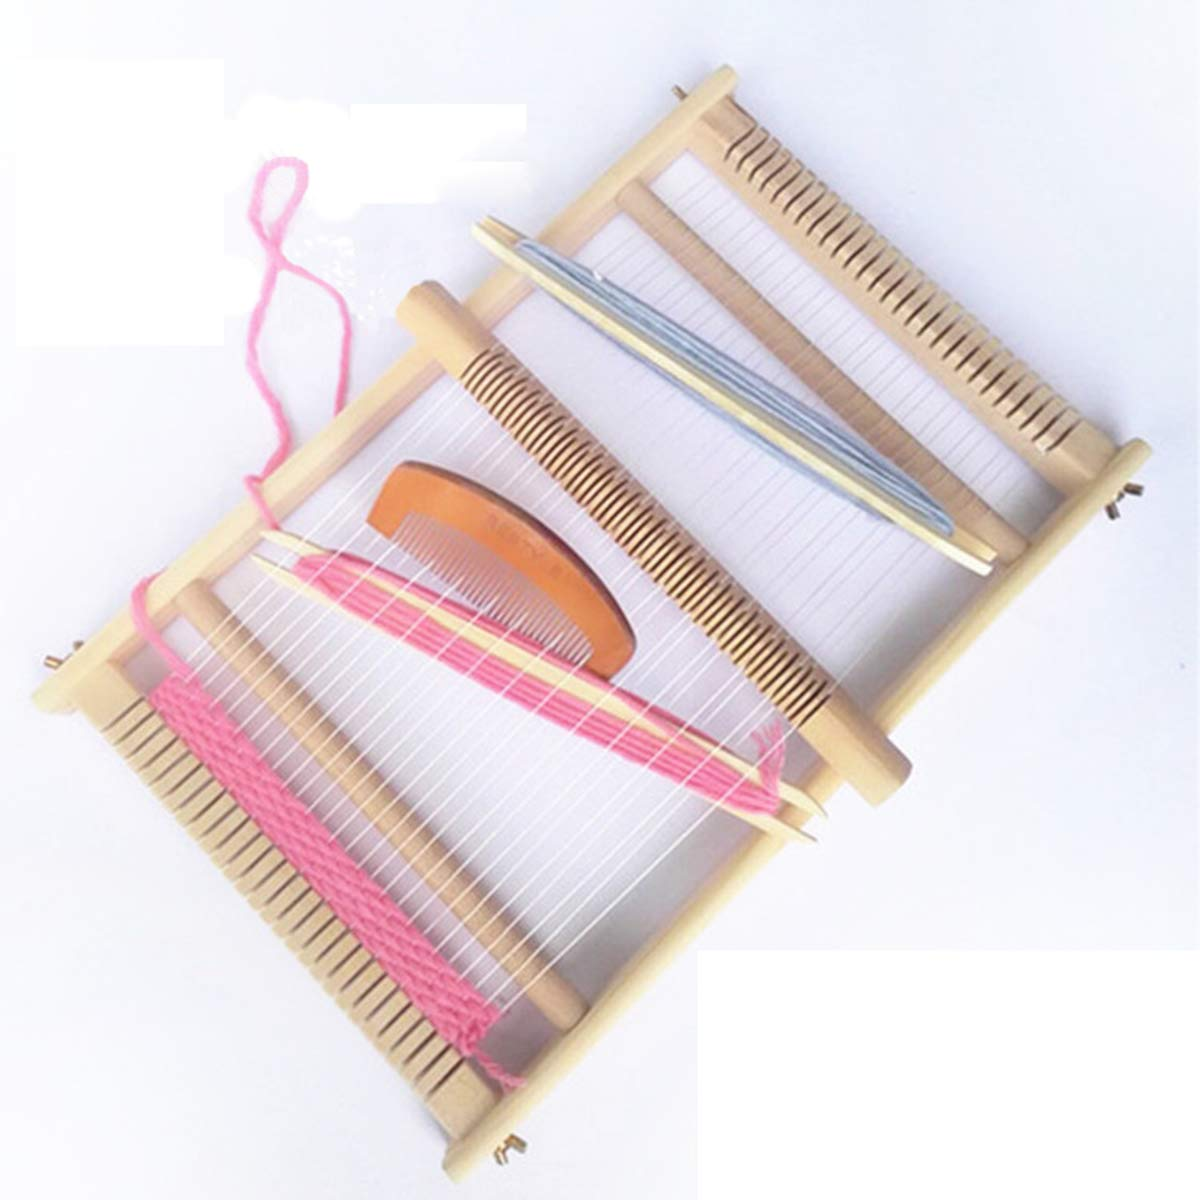 vismiles Wooden Loom Kit Hand-Knitted Machine DIY Weaving Children Safety